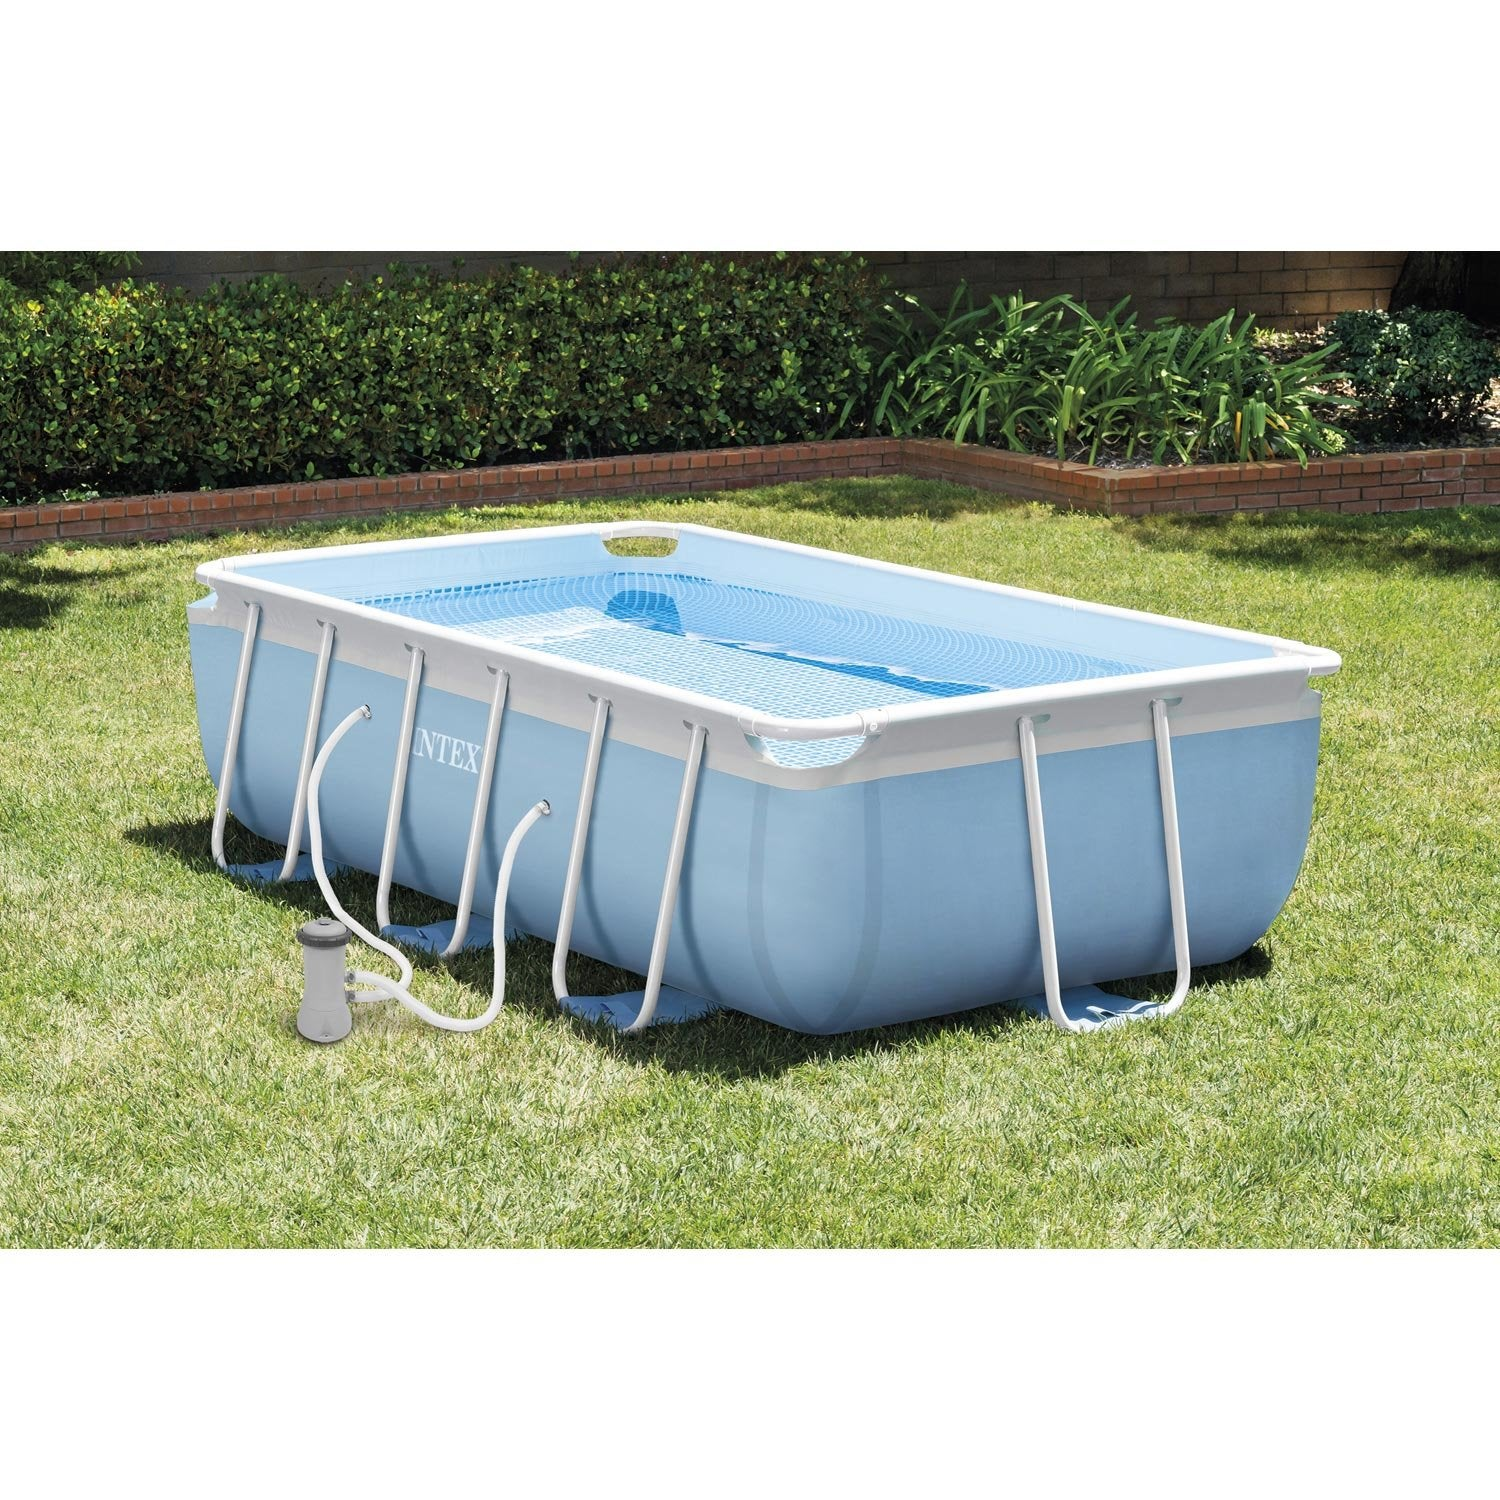 Piscine hors sol autoportante tubulaire intex l 3 4 x l 2 for Hors sol tubulaire